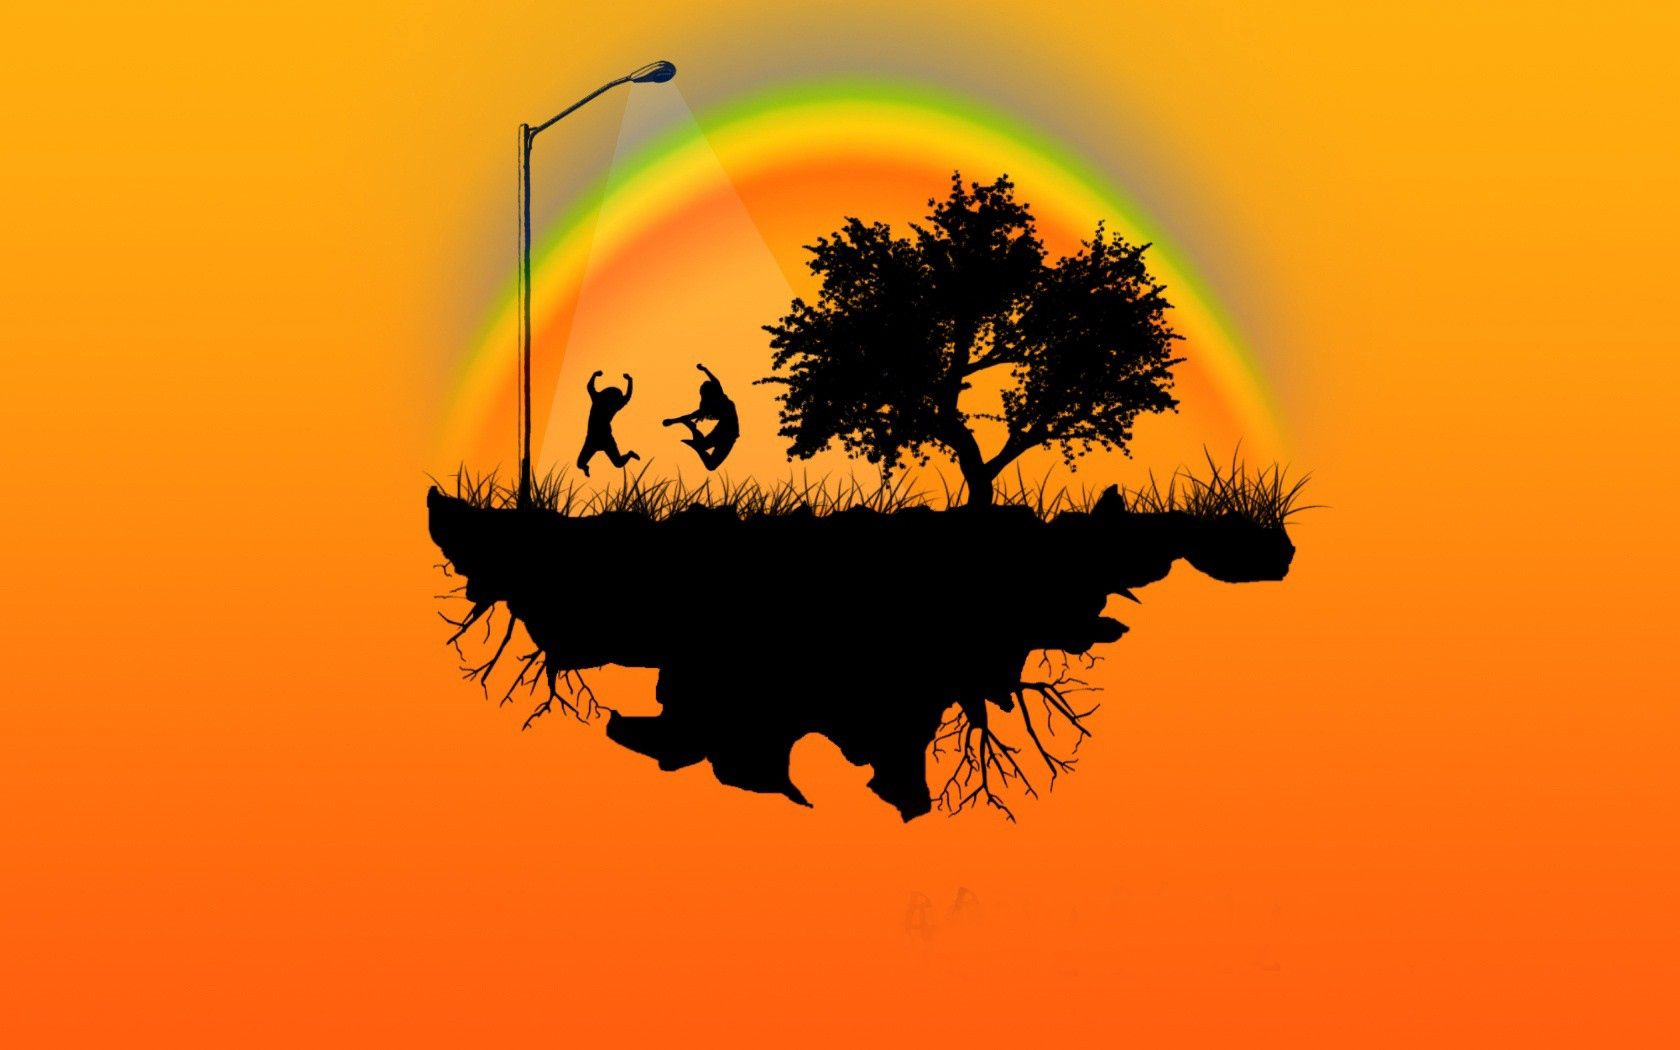 57660 download wallpaper Vector, Island, People, Emotions, Trees, Bounce, Jump screensavers and pictures for free